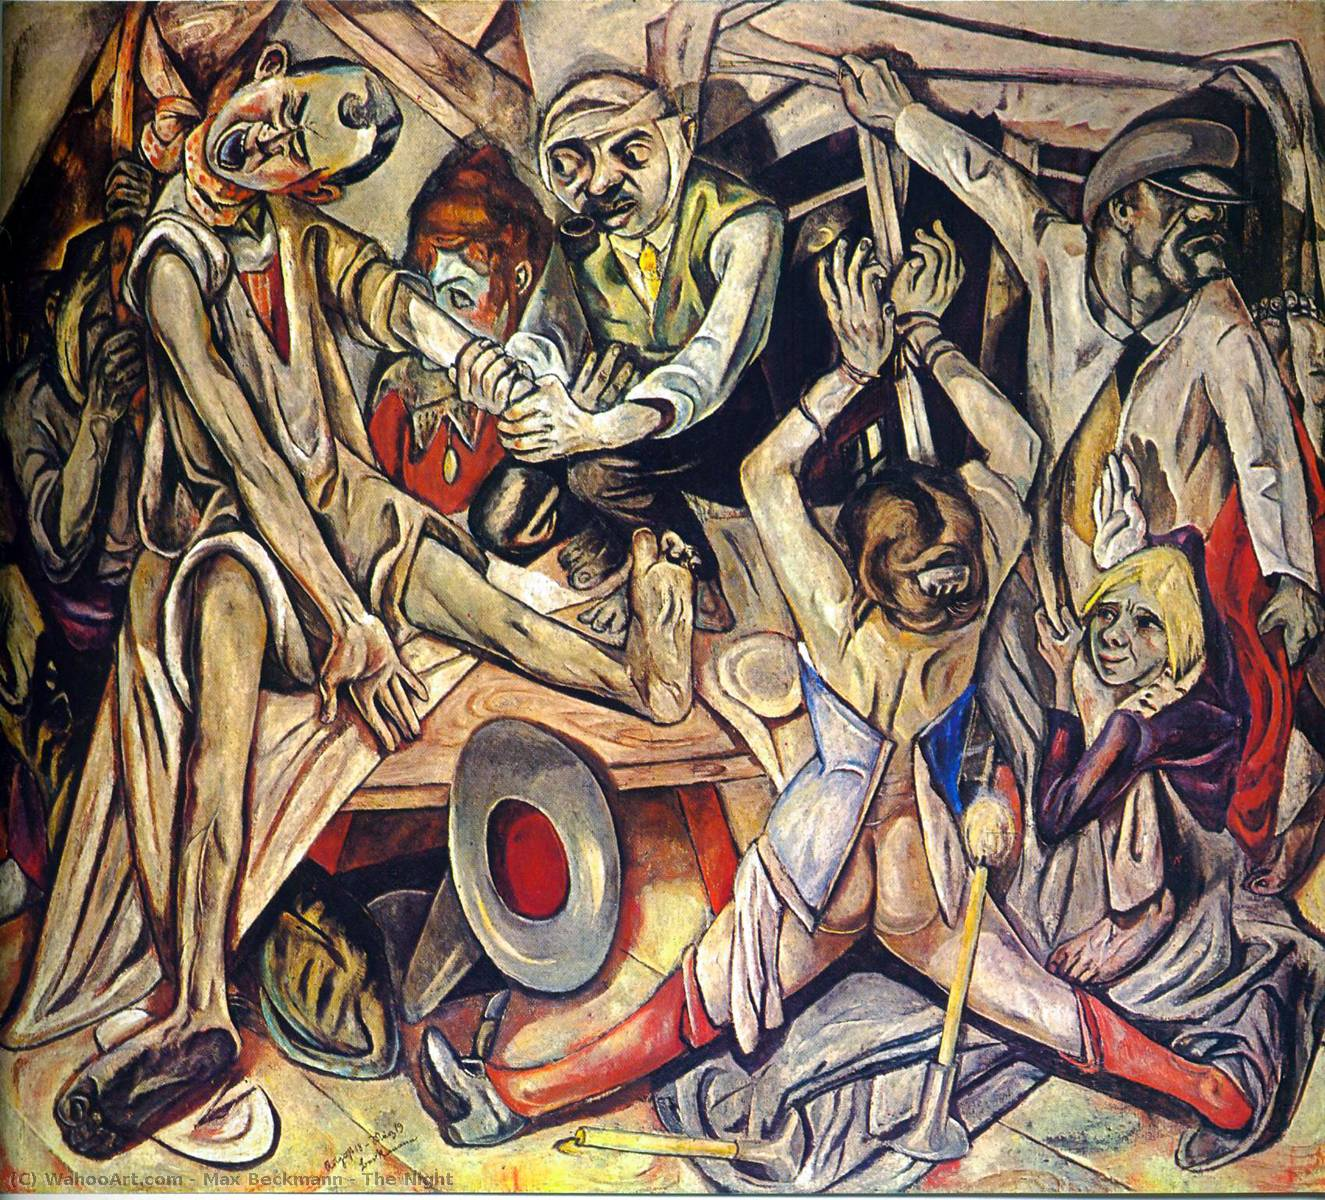 Order Oil Painting The Night, 1919 by Max Beckmann (1884-1950, Germany) | WahooArt.com | Order Hand Painted Oil Painting The Night, 1919 by Max Beckmann (1884-1950, Germany) | WahooArt.com